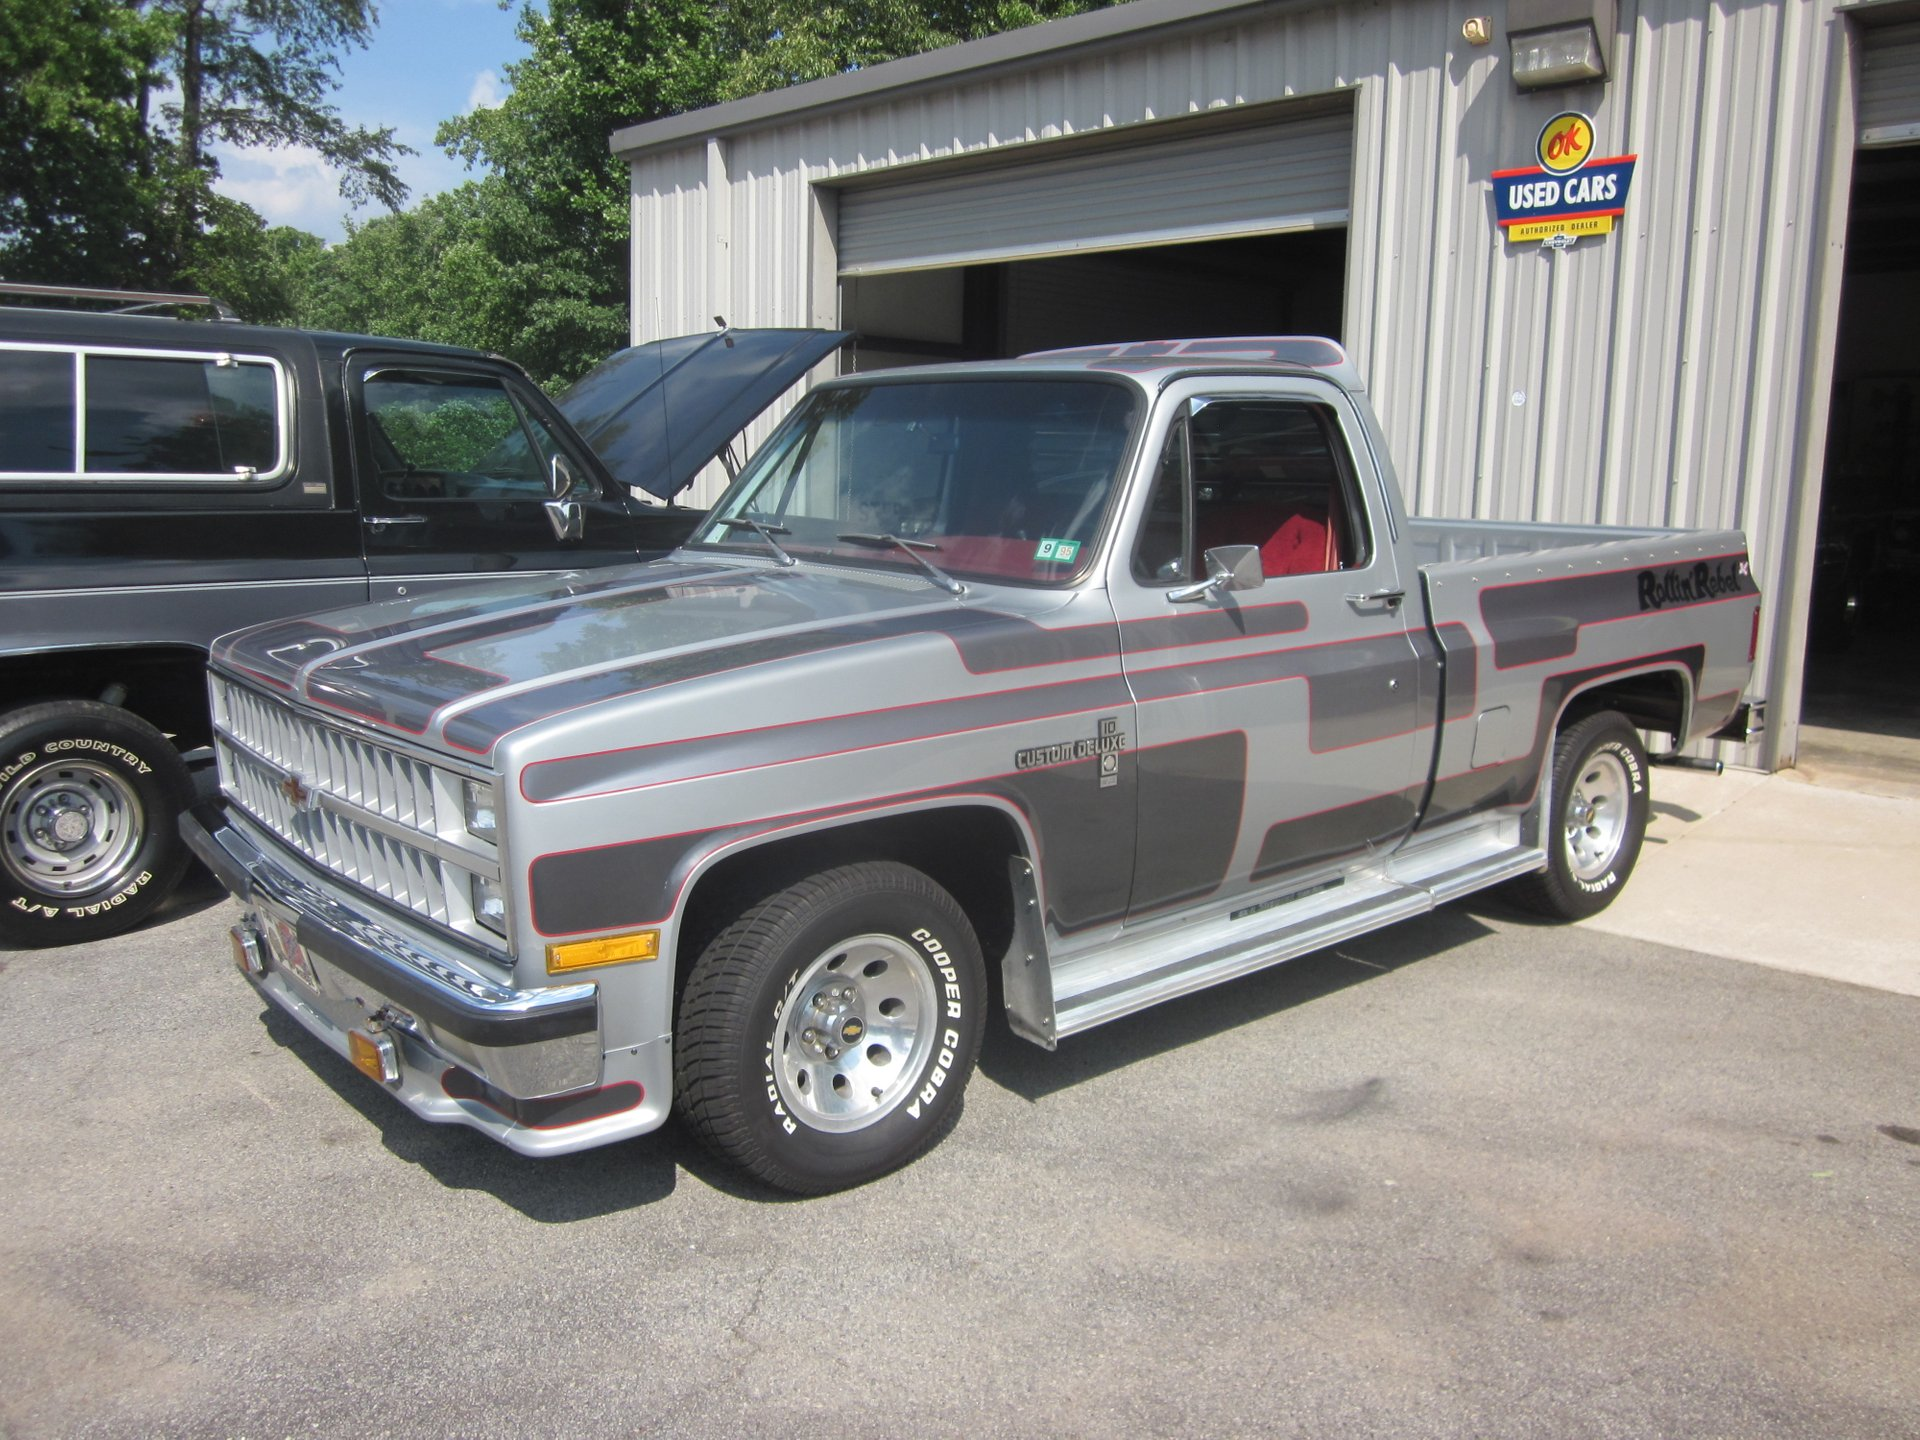 1981 chevrolet c10 limited edition